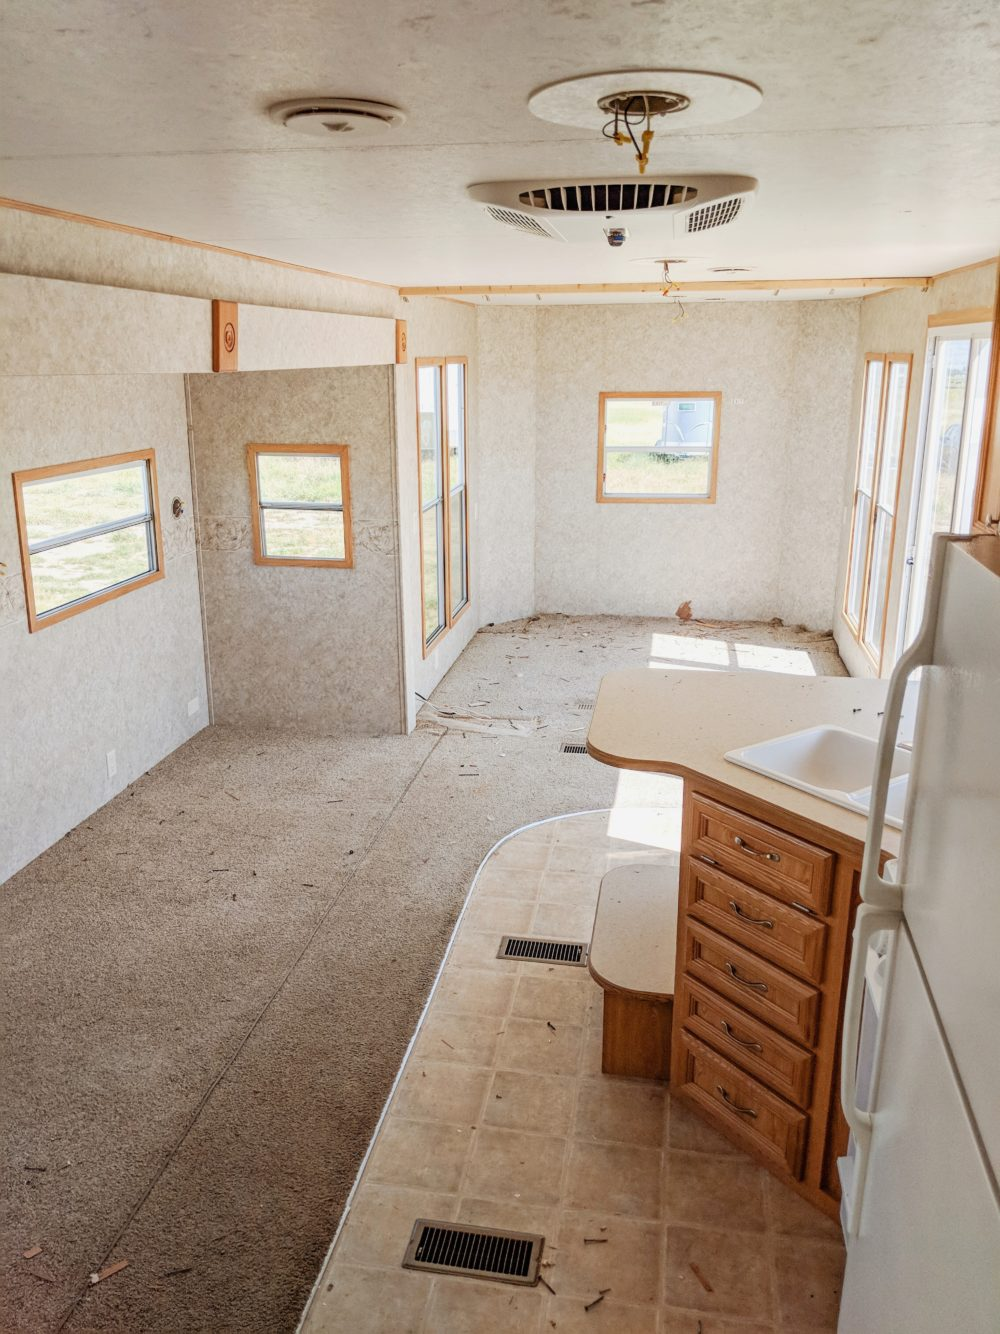 RV mid reno ready to have interior walls painted